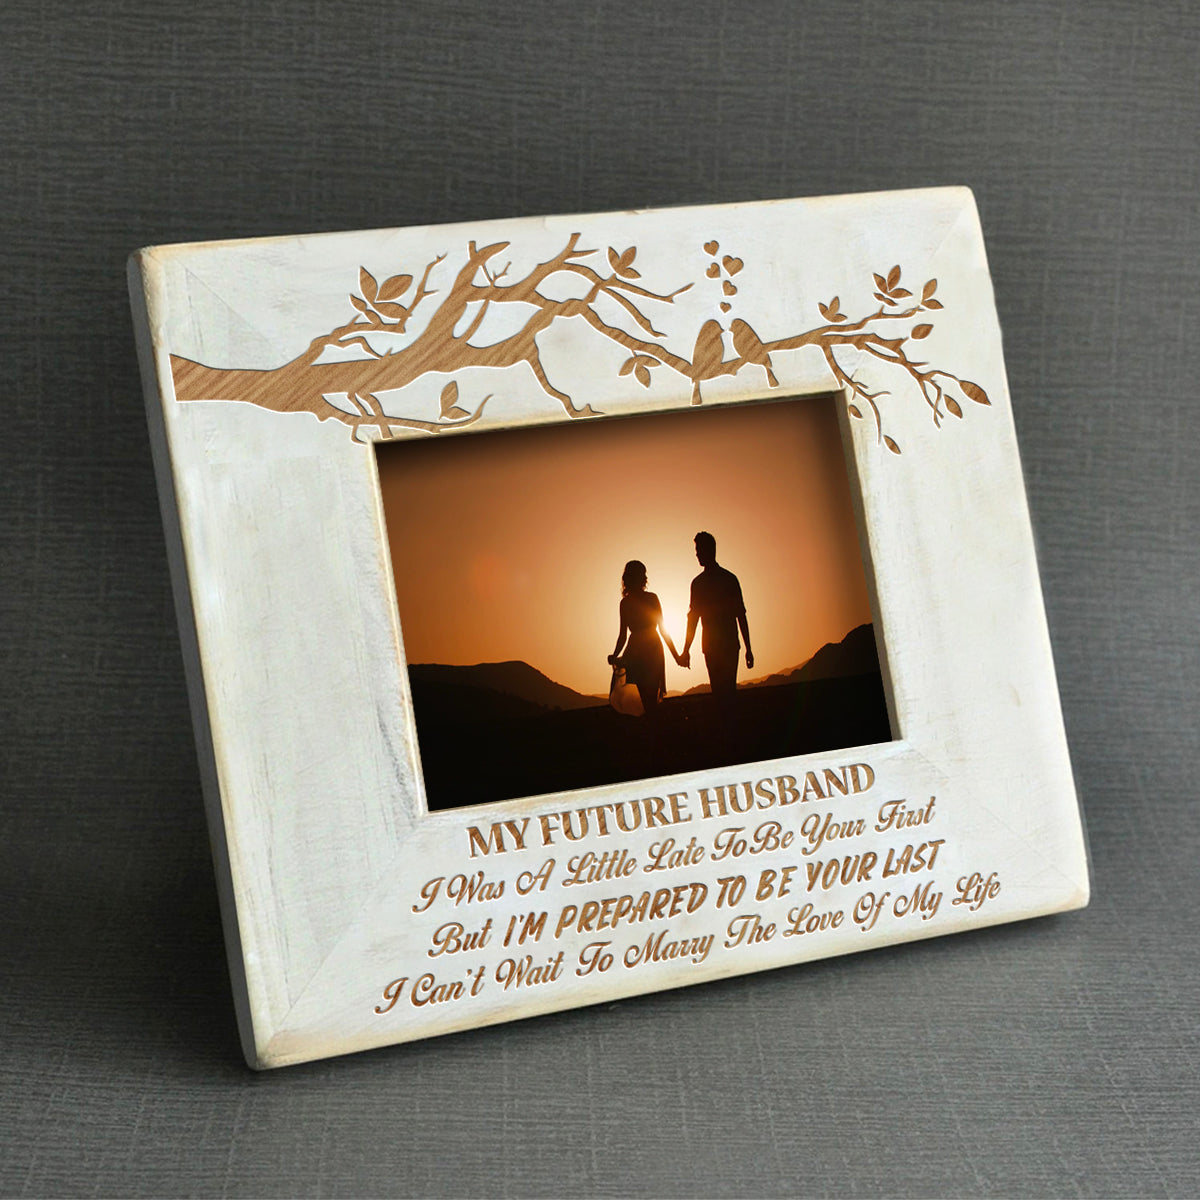 Express Delivery - To My Future Husband - I'm Prepared To Be Your Last- Wood Frame